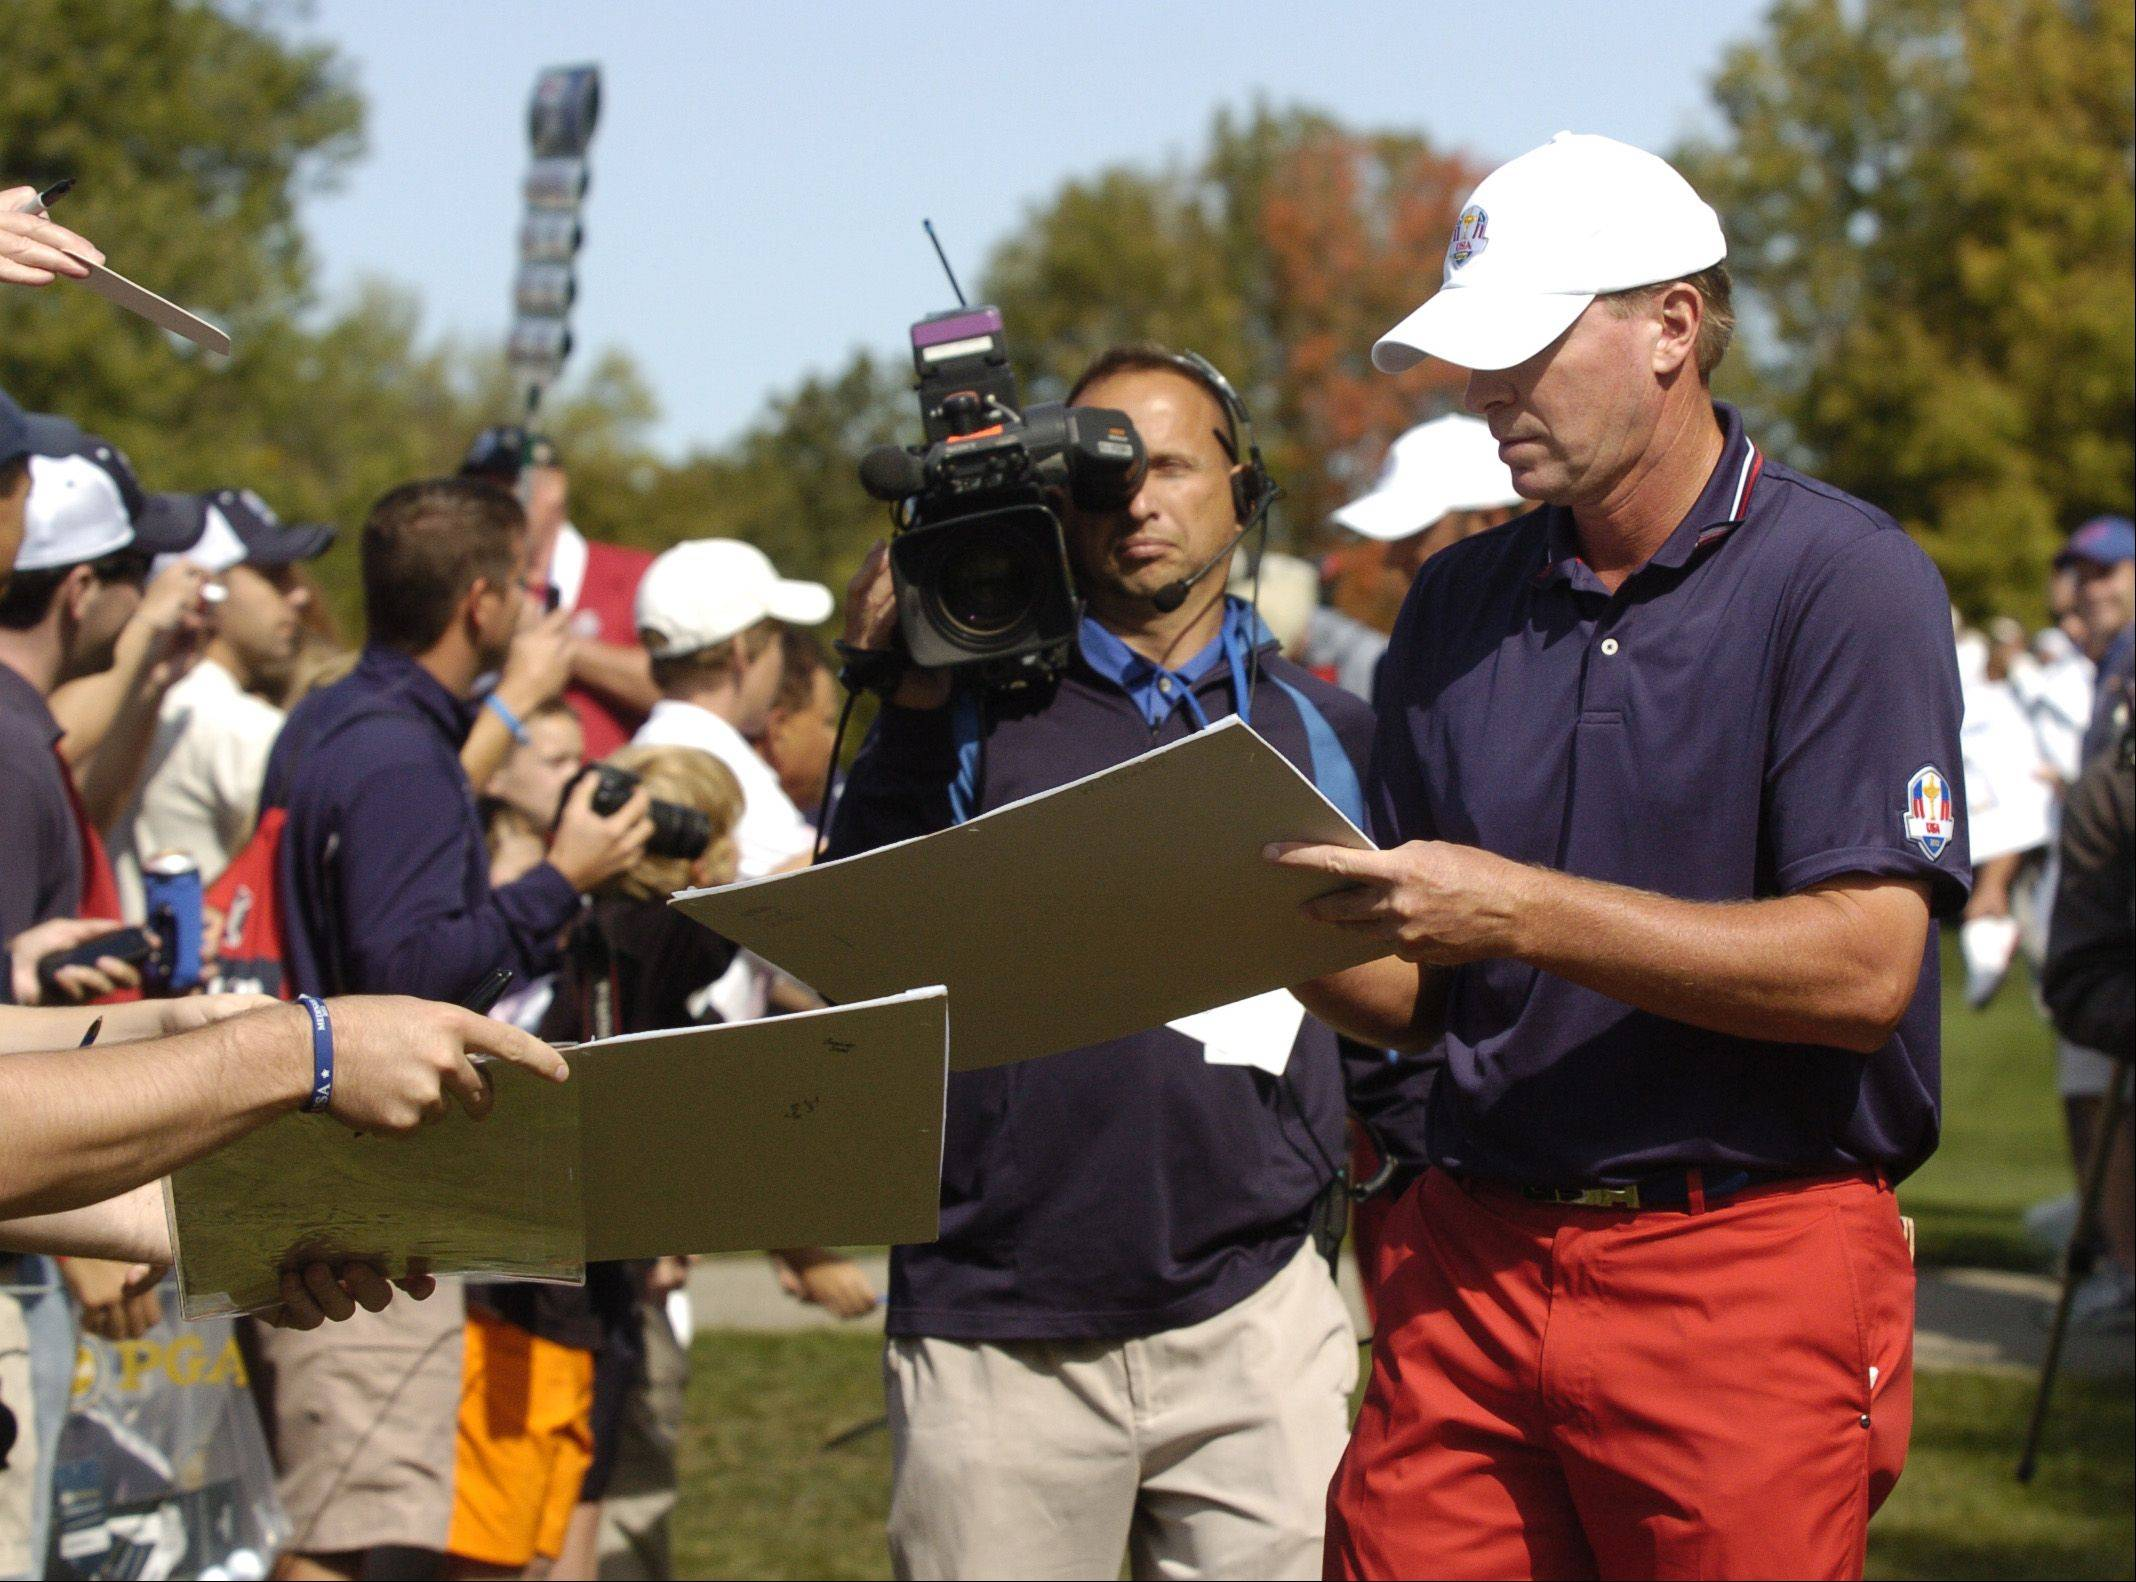 Steve Stricker of Team USA signs autographs.